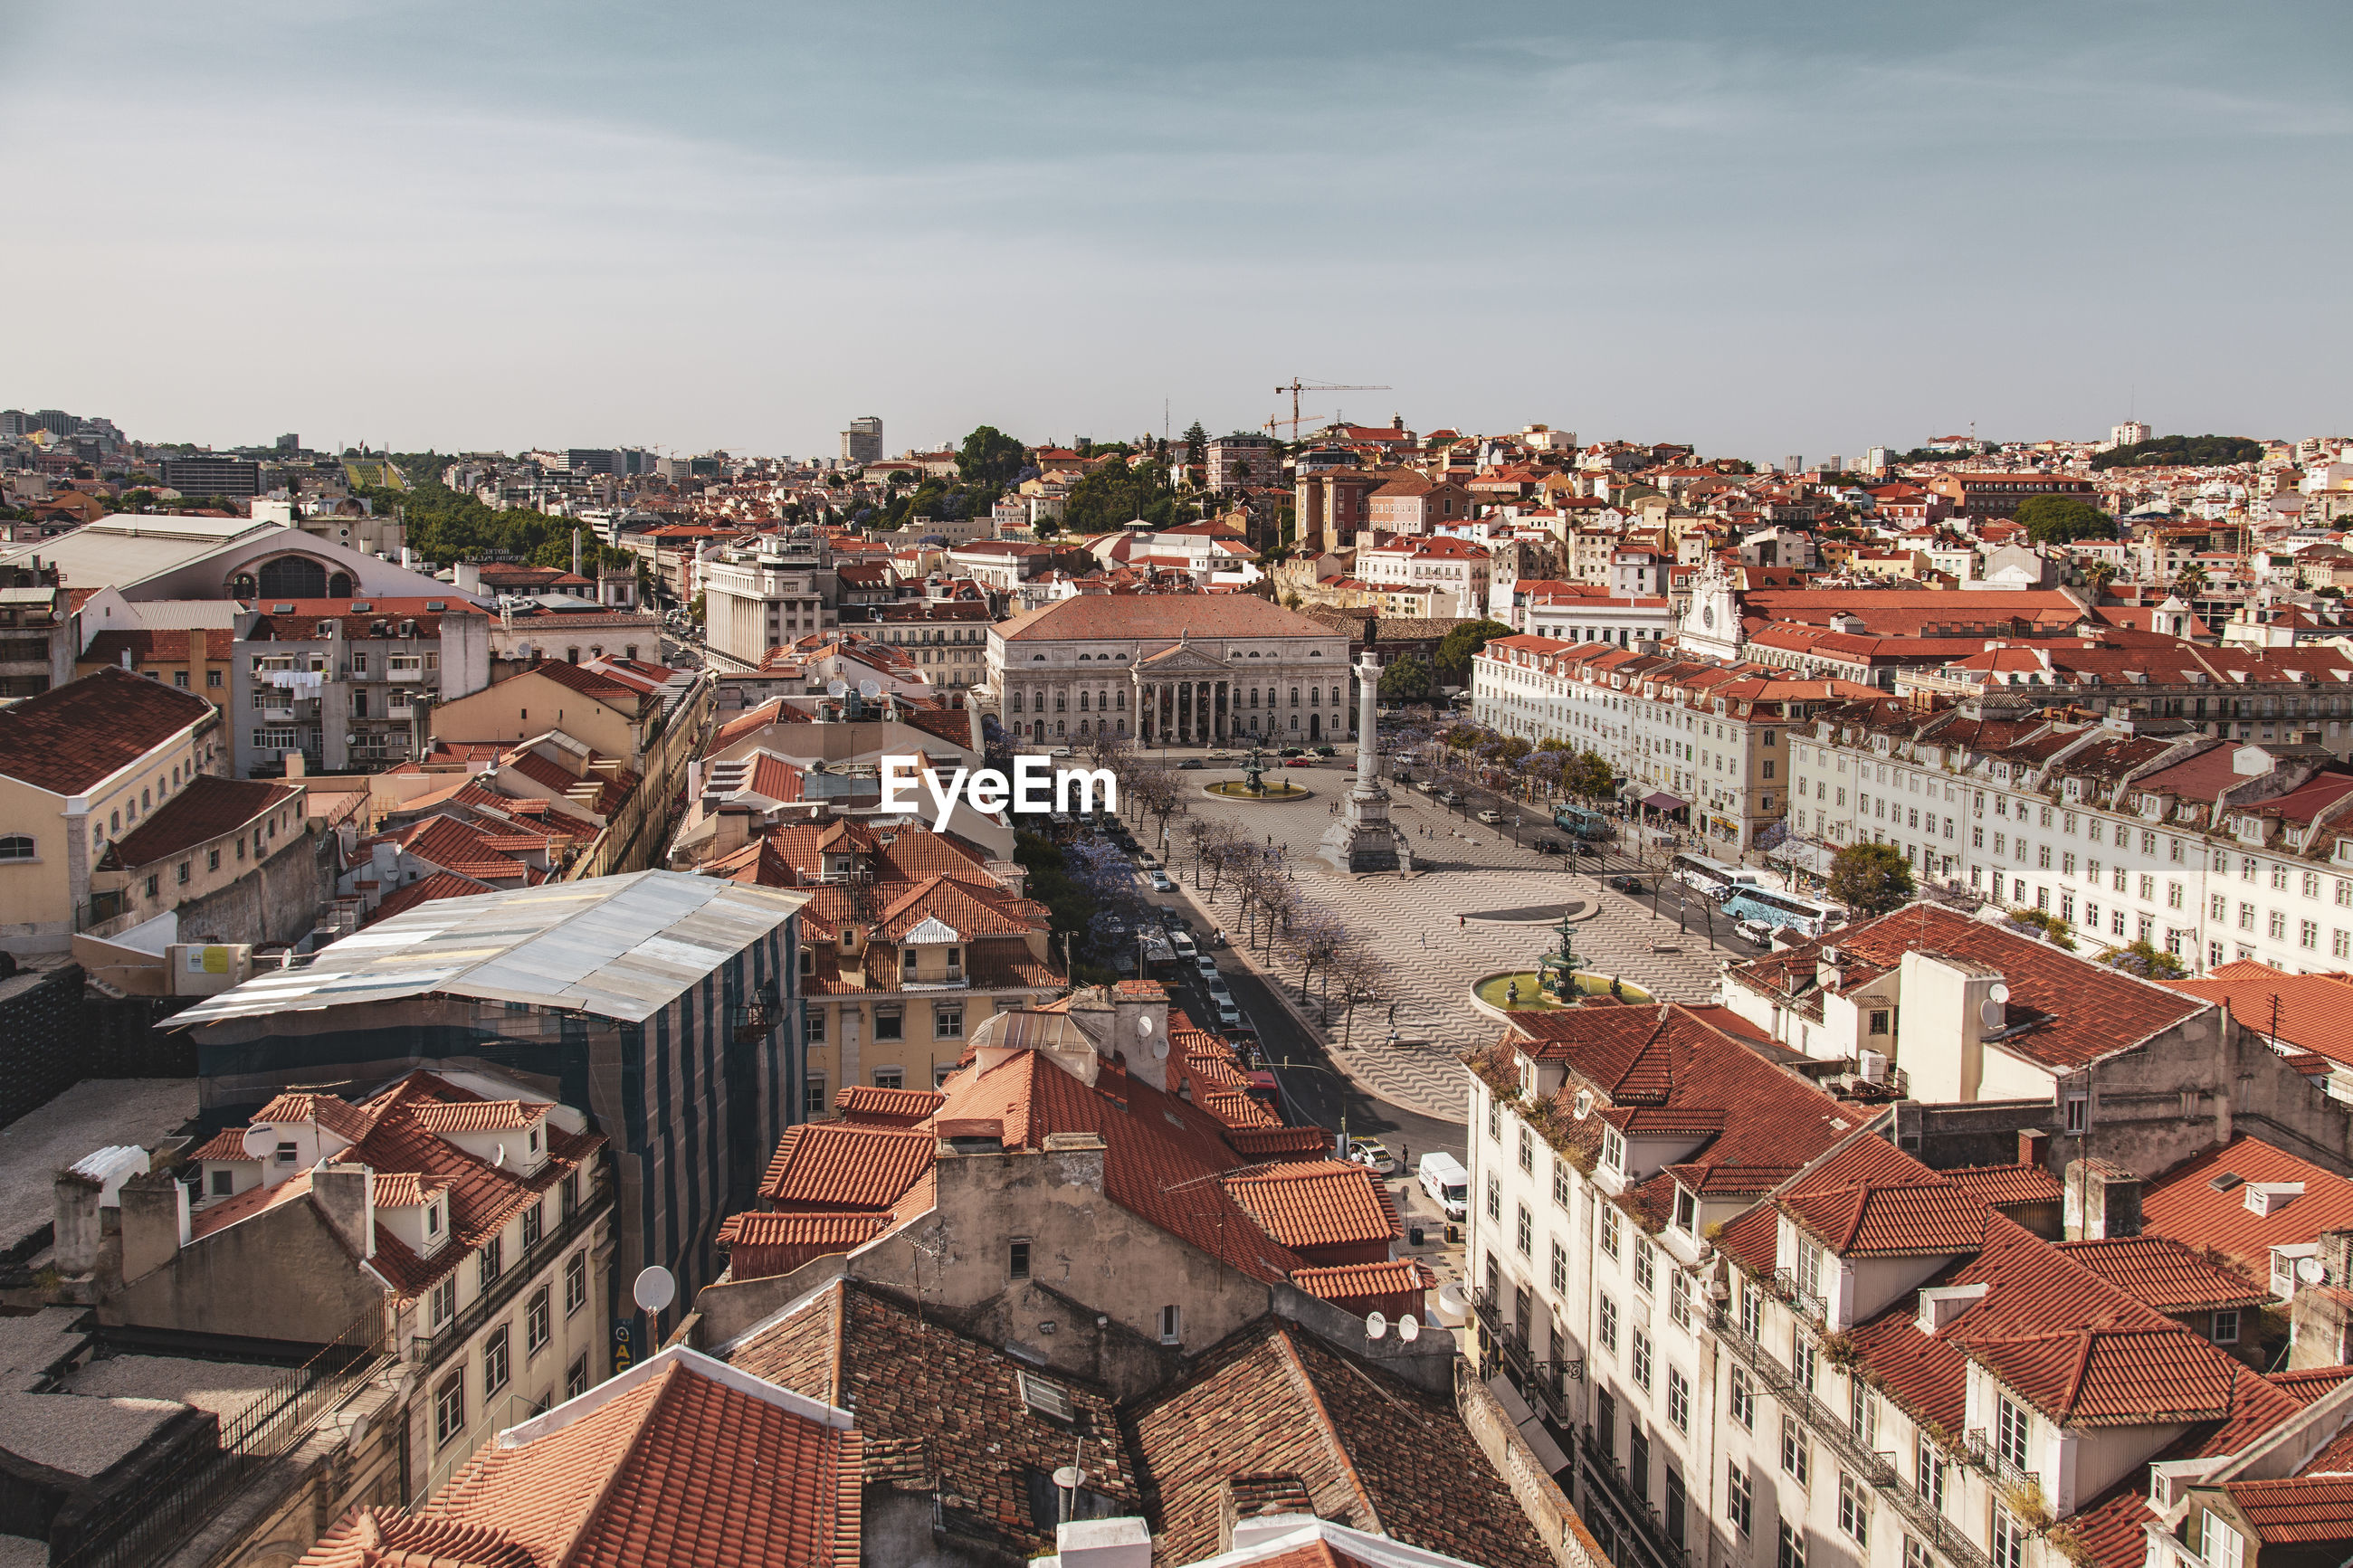 HIGH ANGLE VIEW OF TOWNSCAPE AGAINST SKY IN CITY